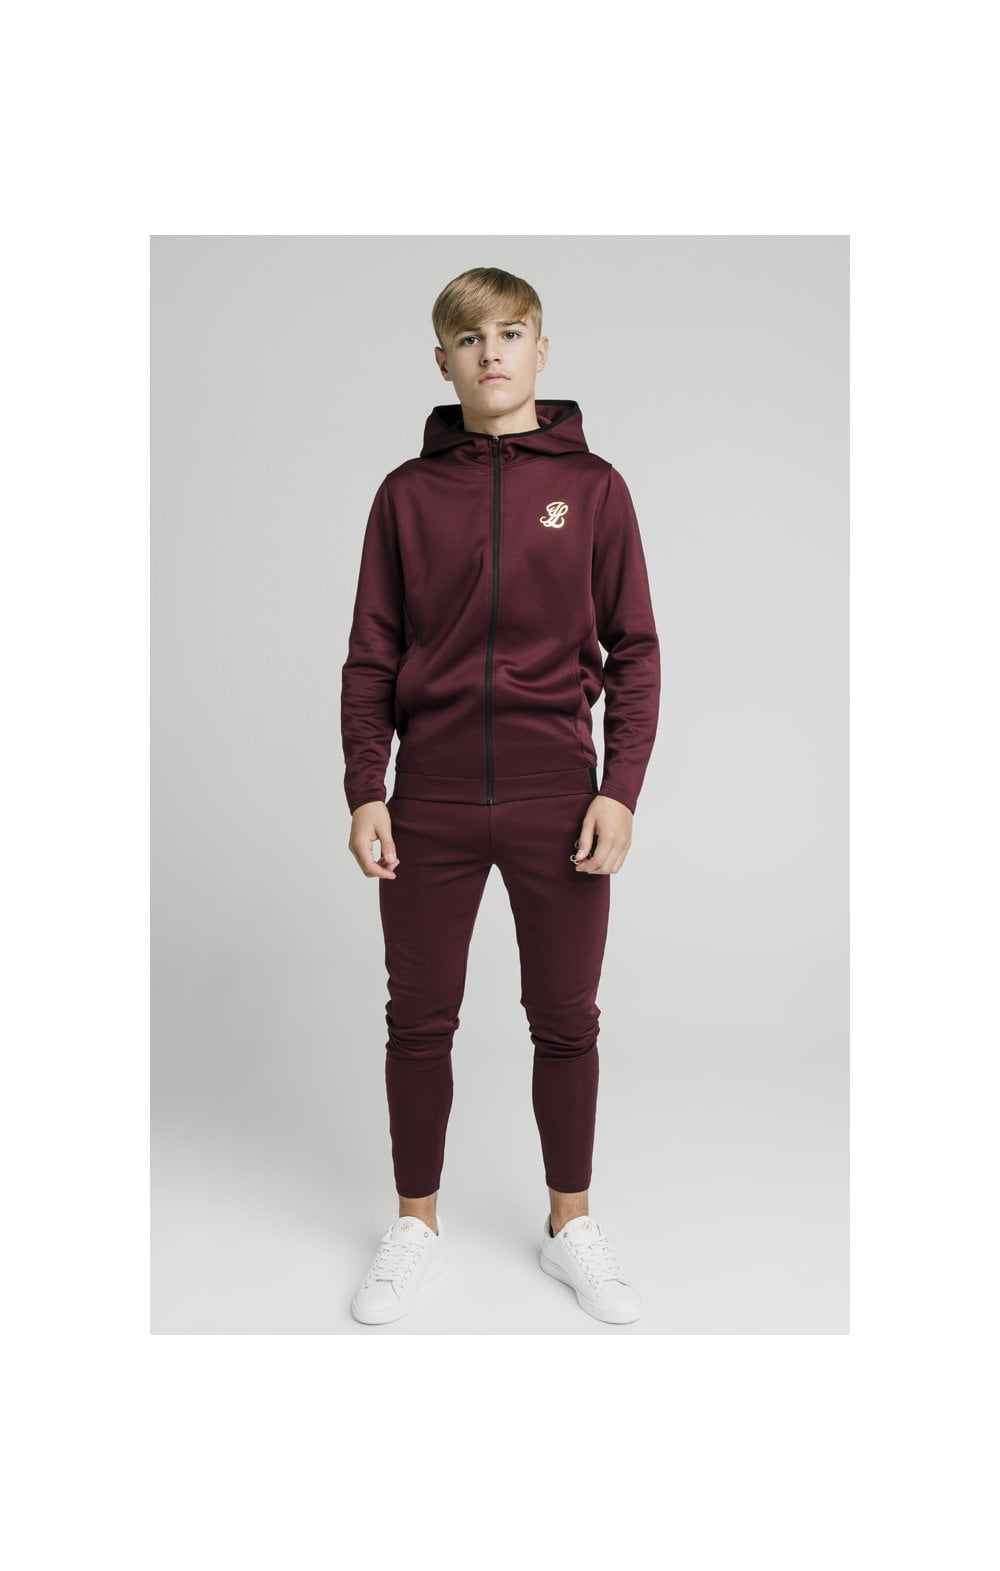 Illusive London Agility Zip Through Hoodie - Burgundy (4)